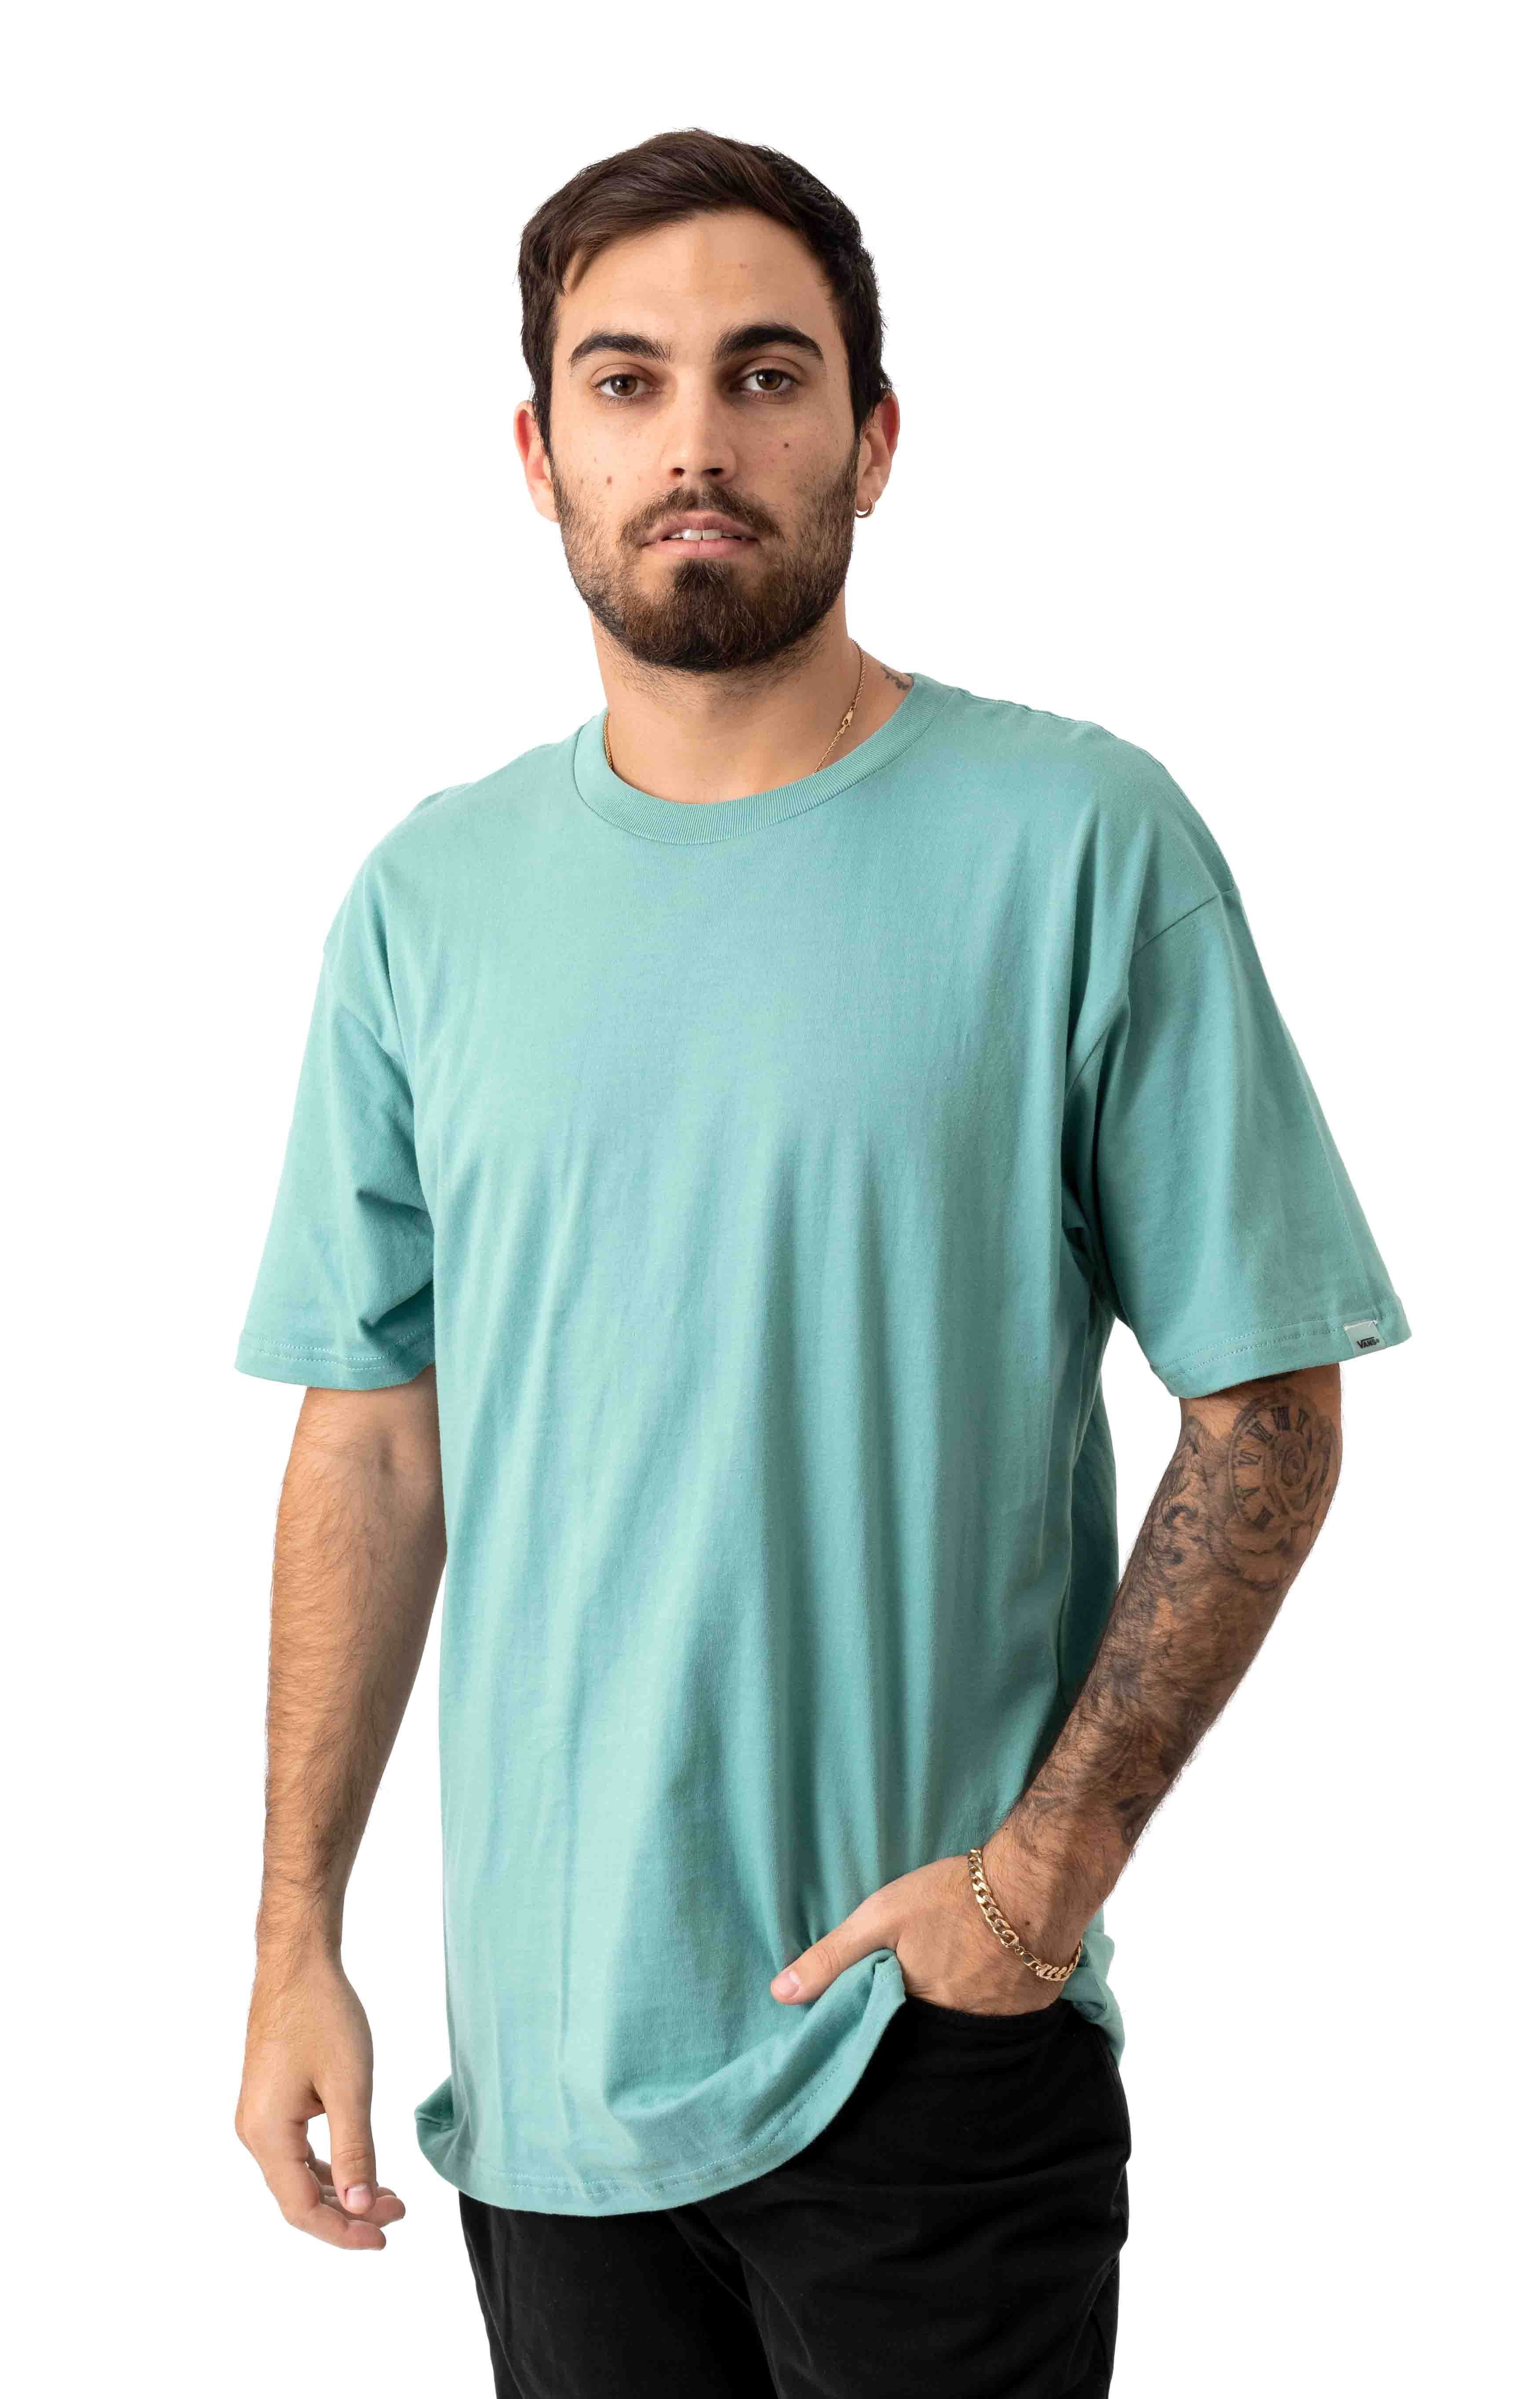 Elevated T-Shirt - Oil Blue